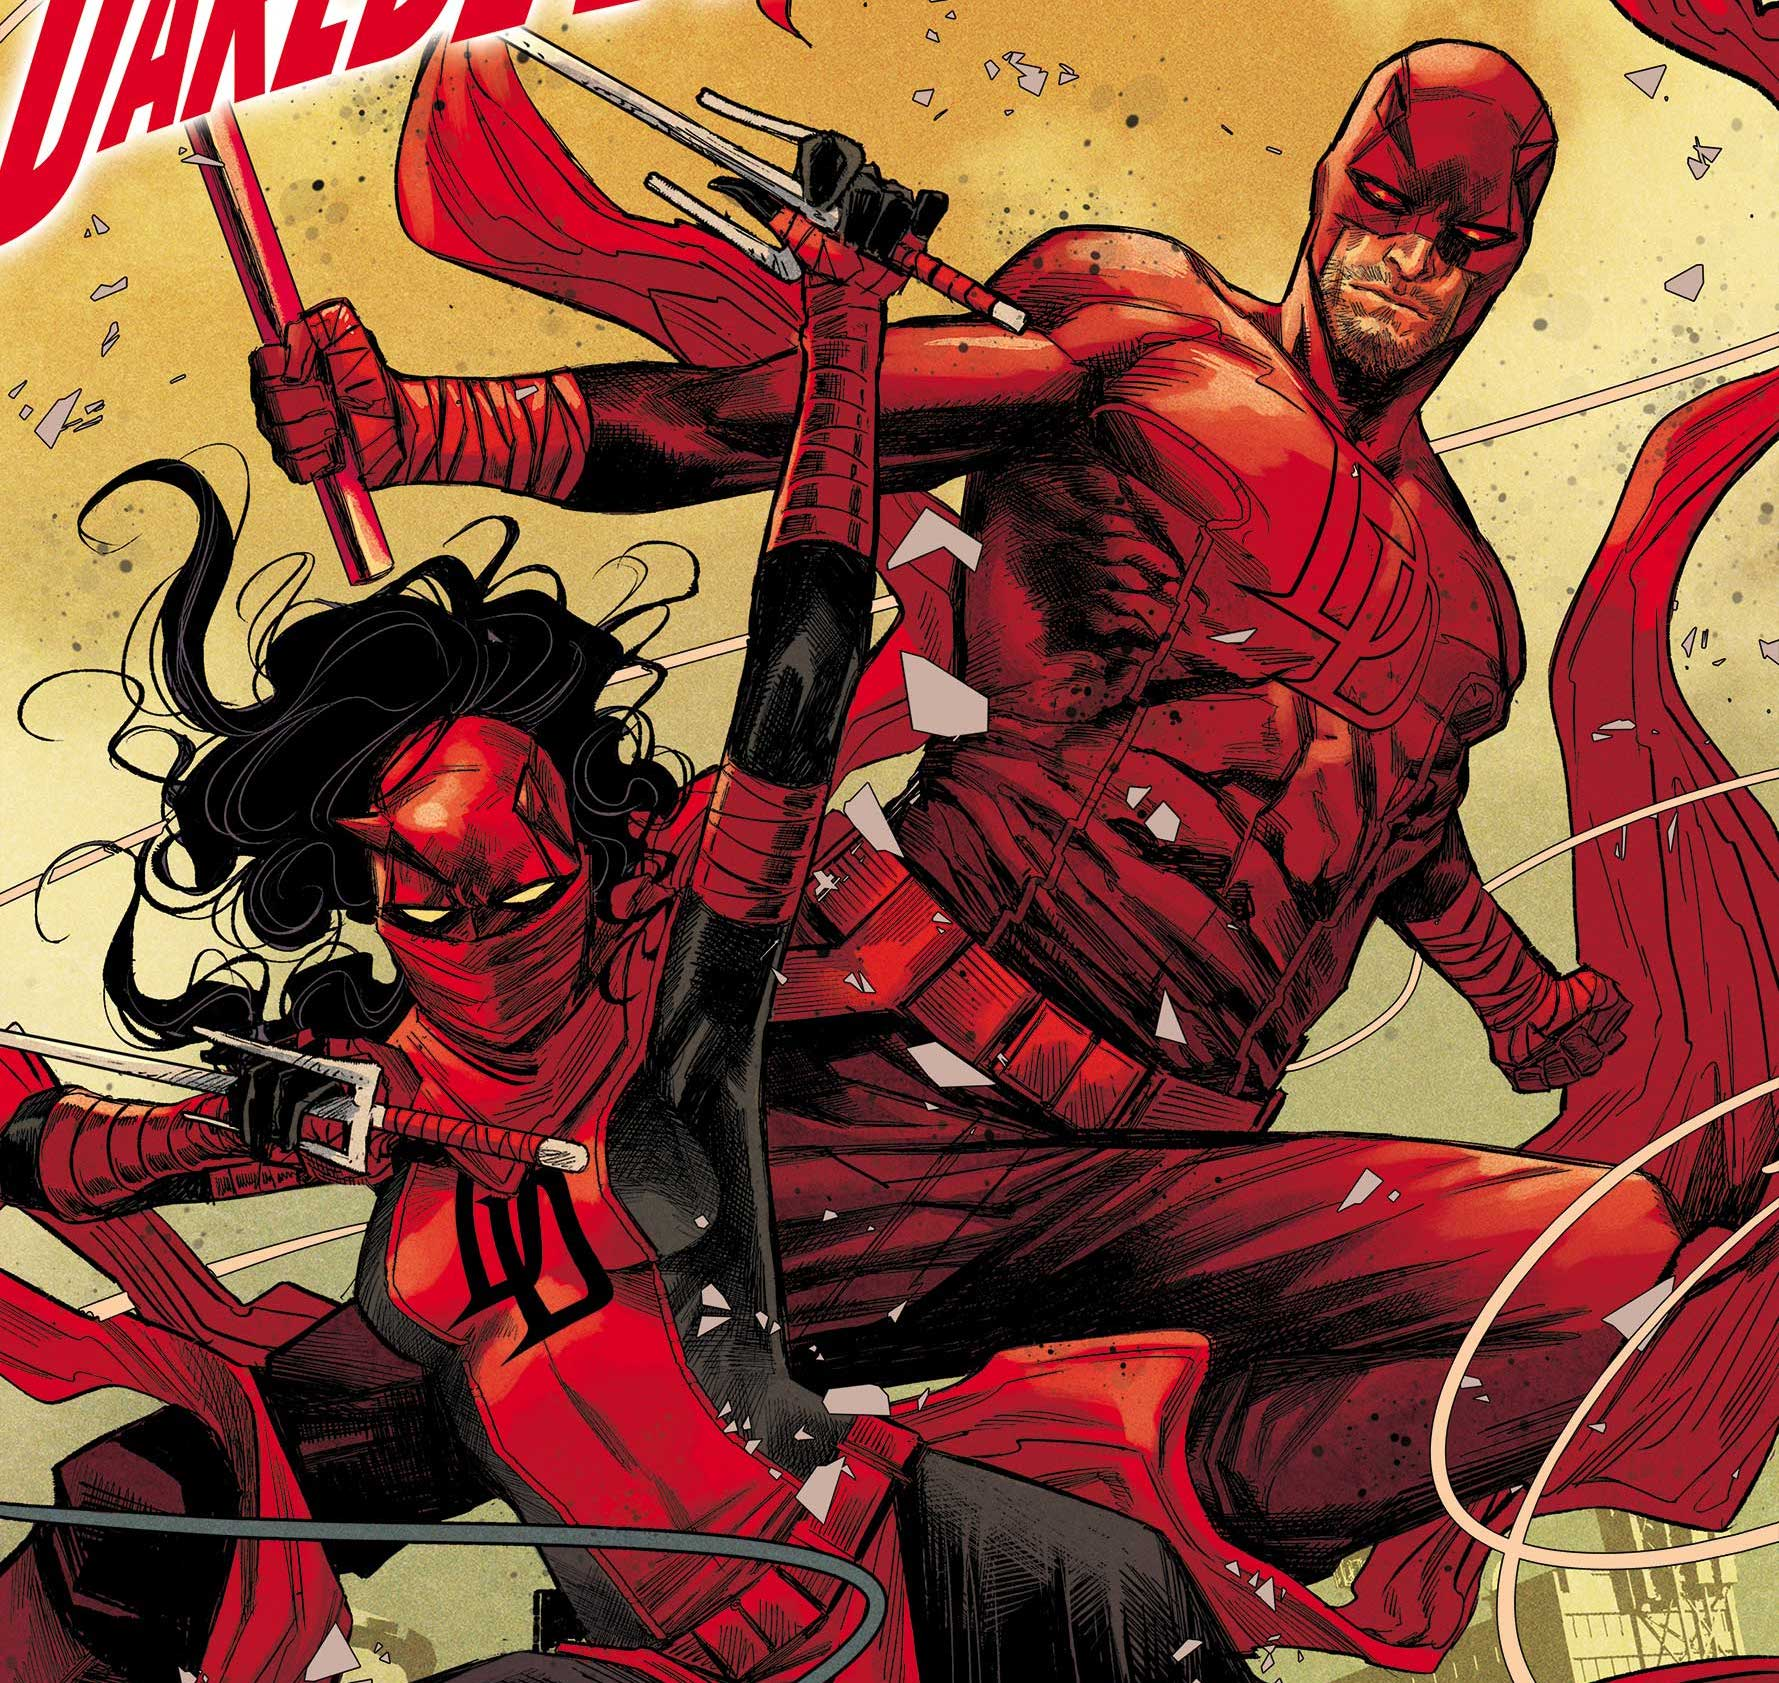 Marvel marks 'Daredevil' #36 as the end to Chip Zdarsky and Marco Checchetto's run